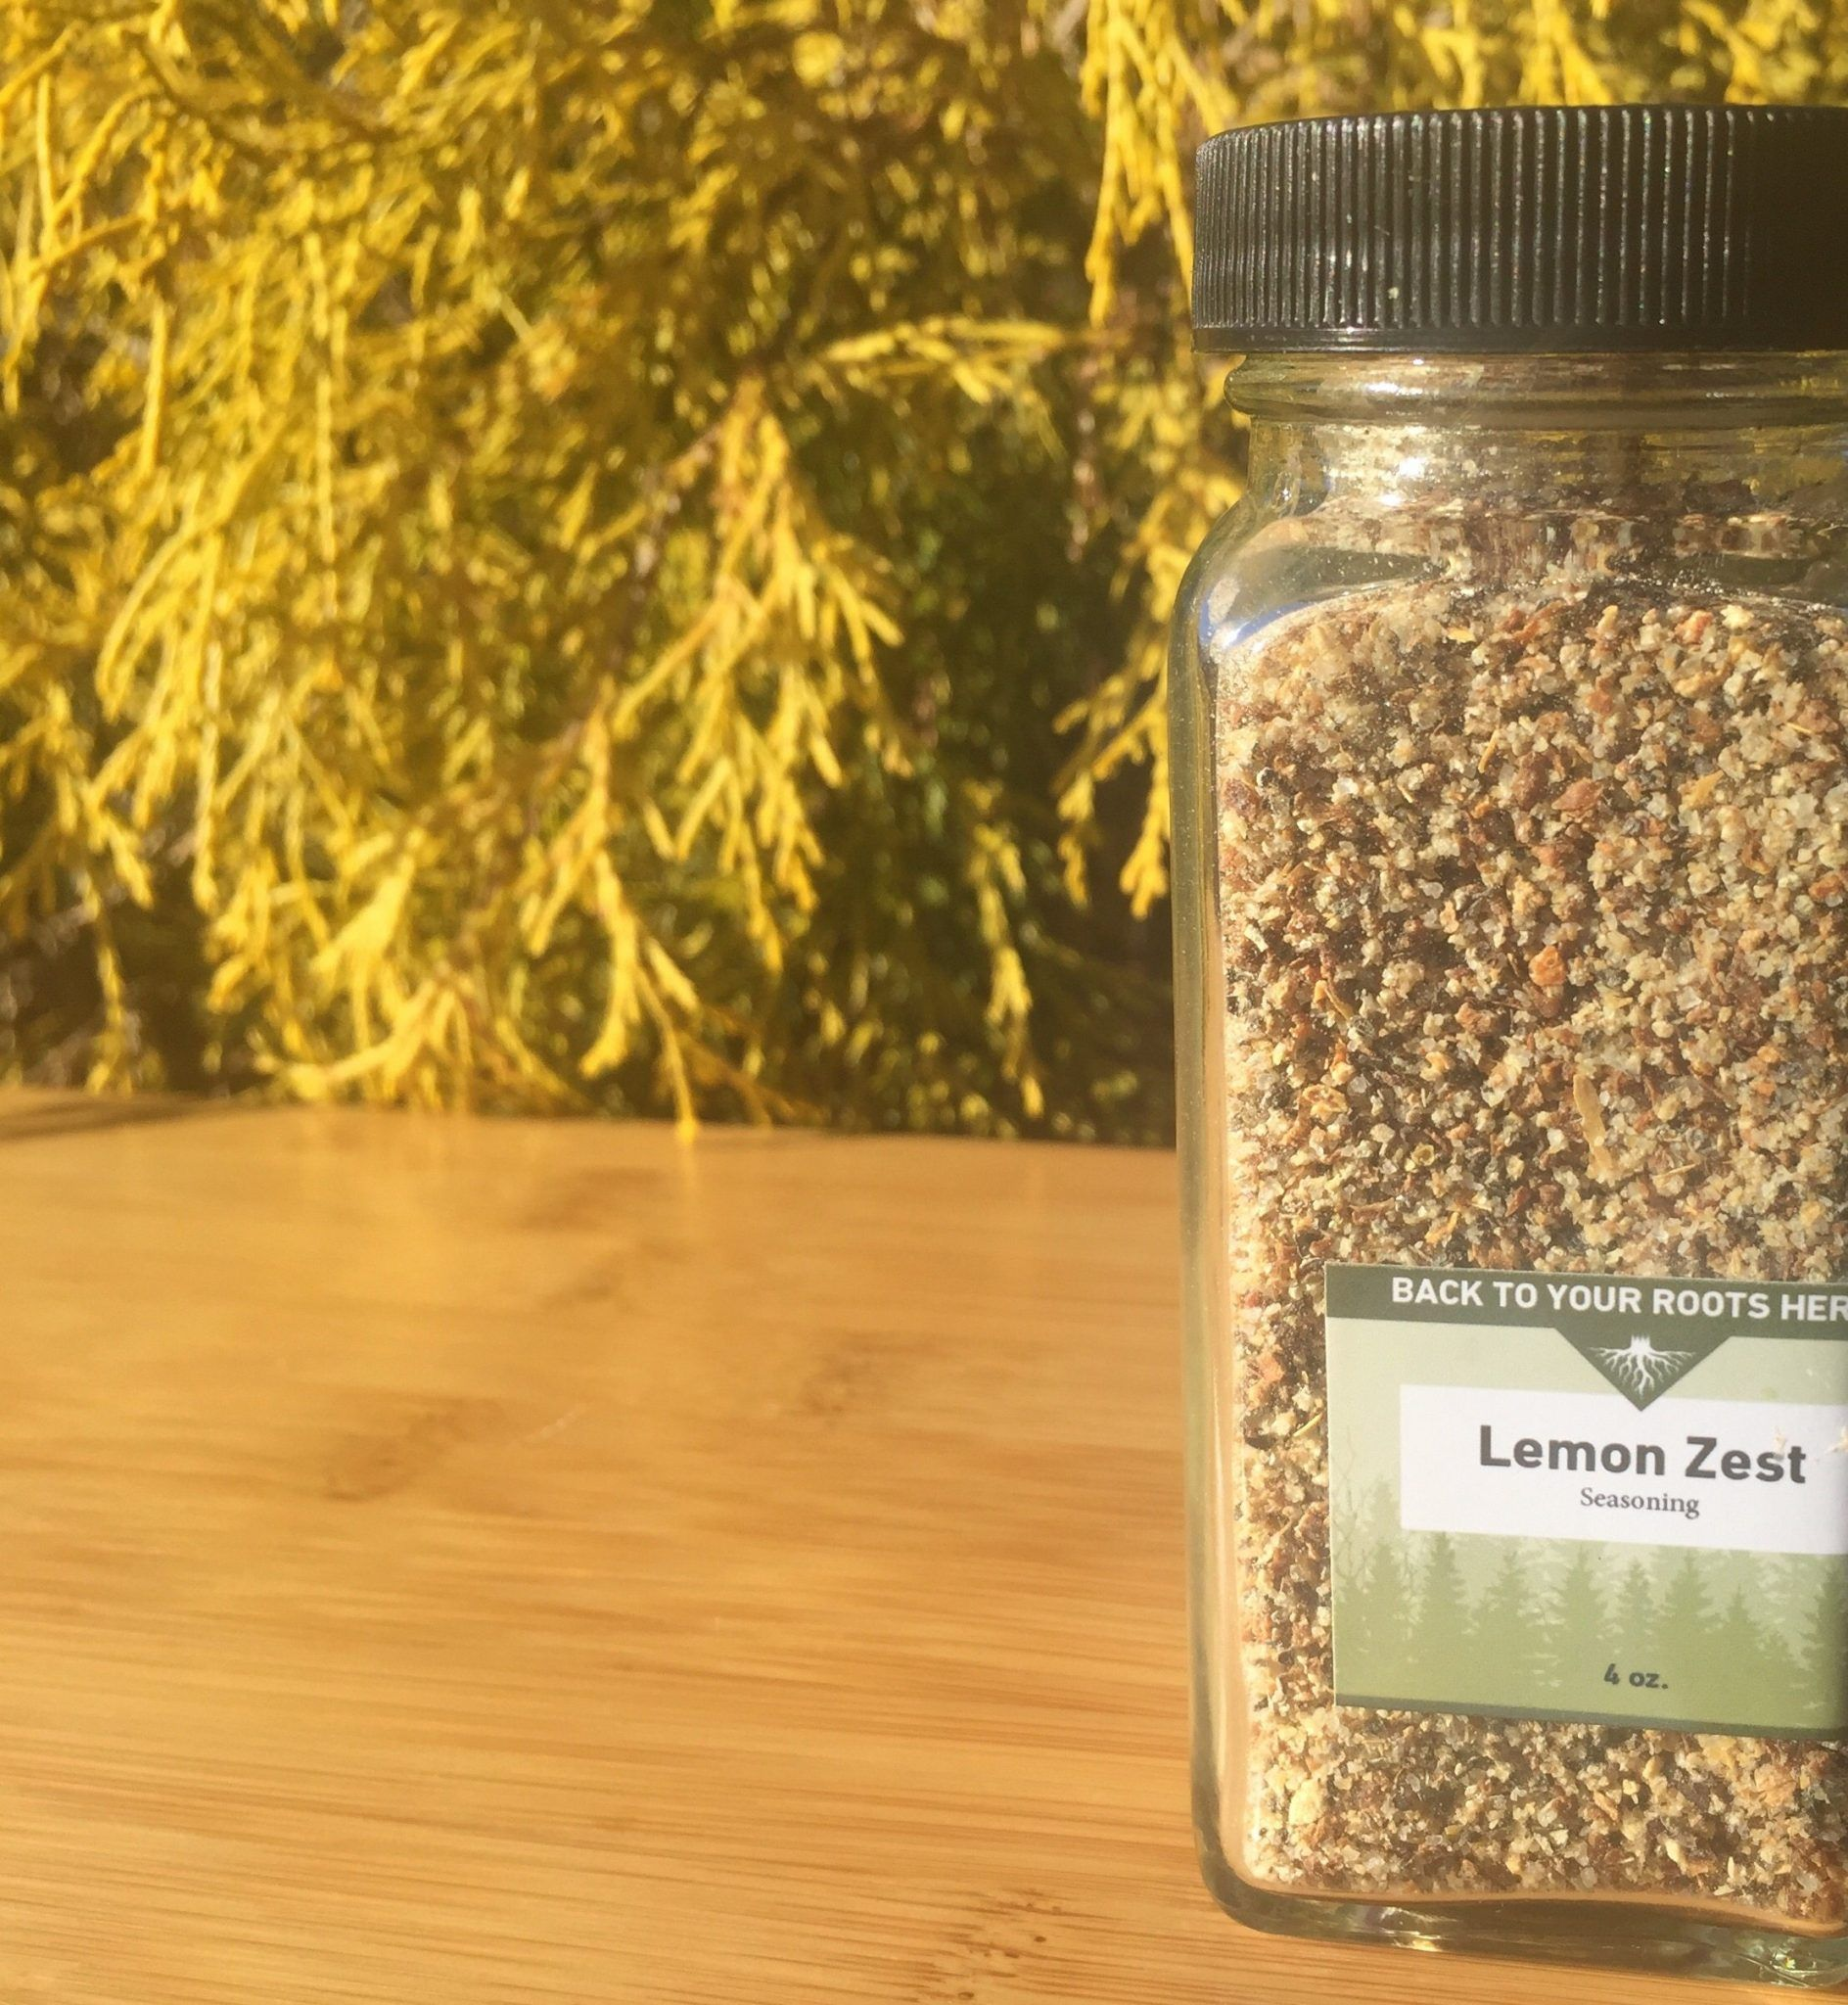 Lemon Zest Seasoning Memorable Flavor 2020 Lemon Zest Seasoning Organic Lemon Flavors